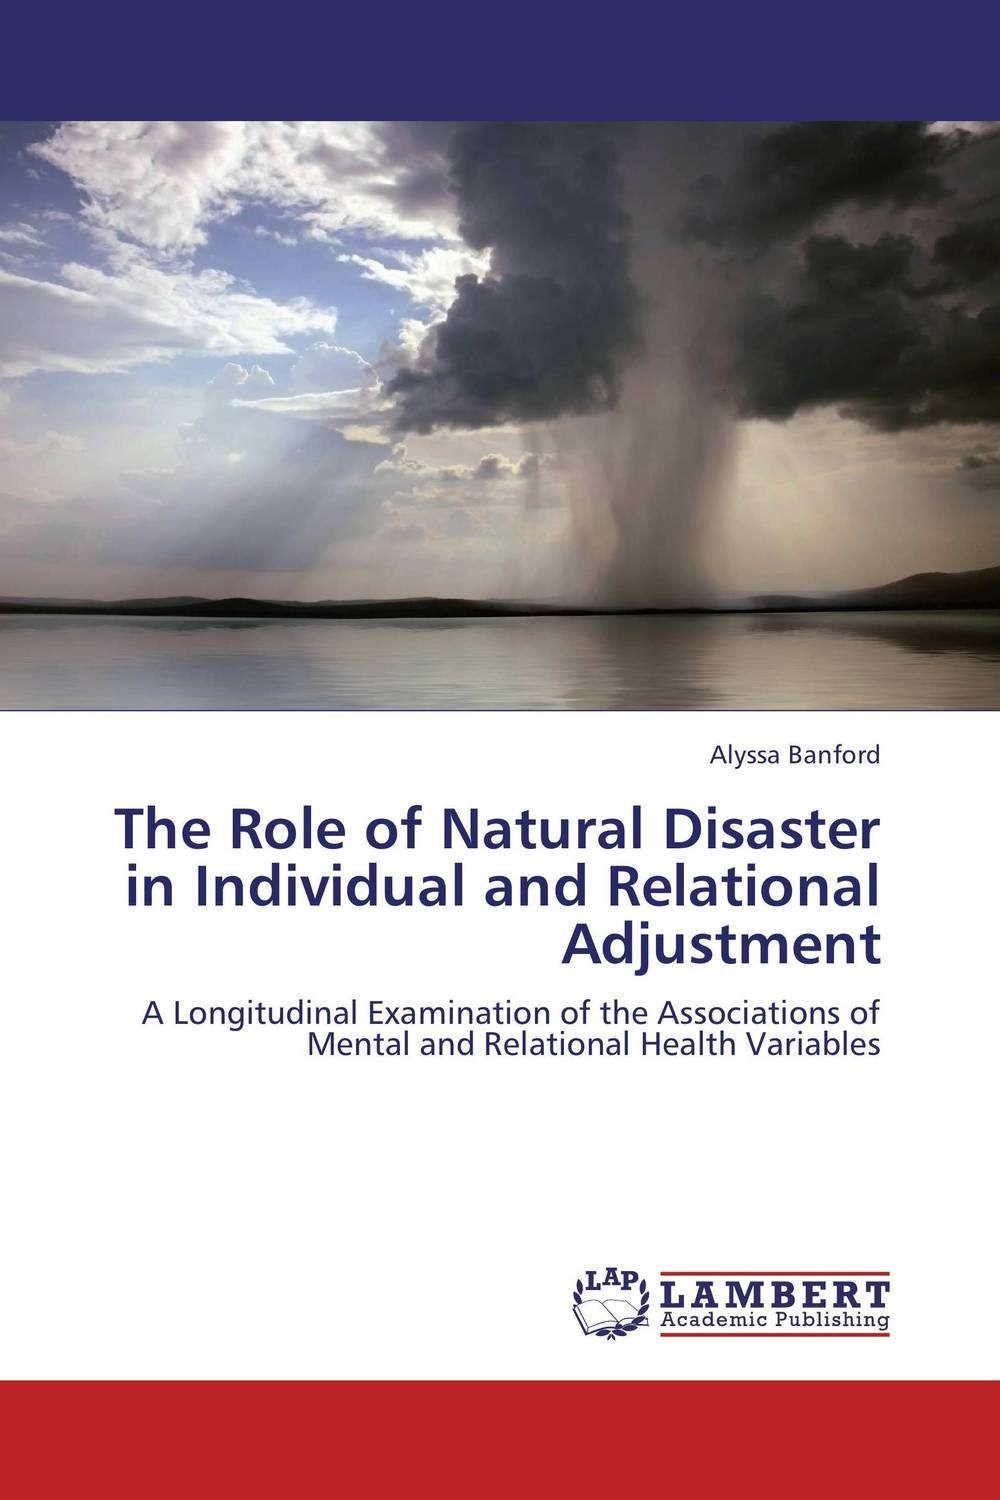 The Role of Natural Disaster in Individual and Relational Adjustment geopolitics of disaster relief and role of diplomacy